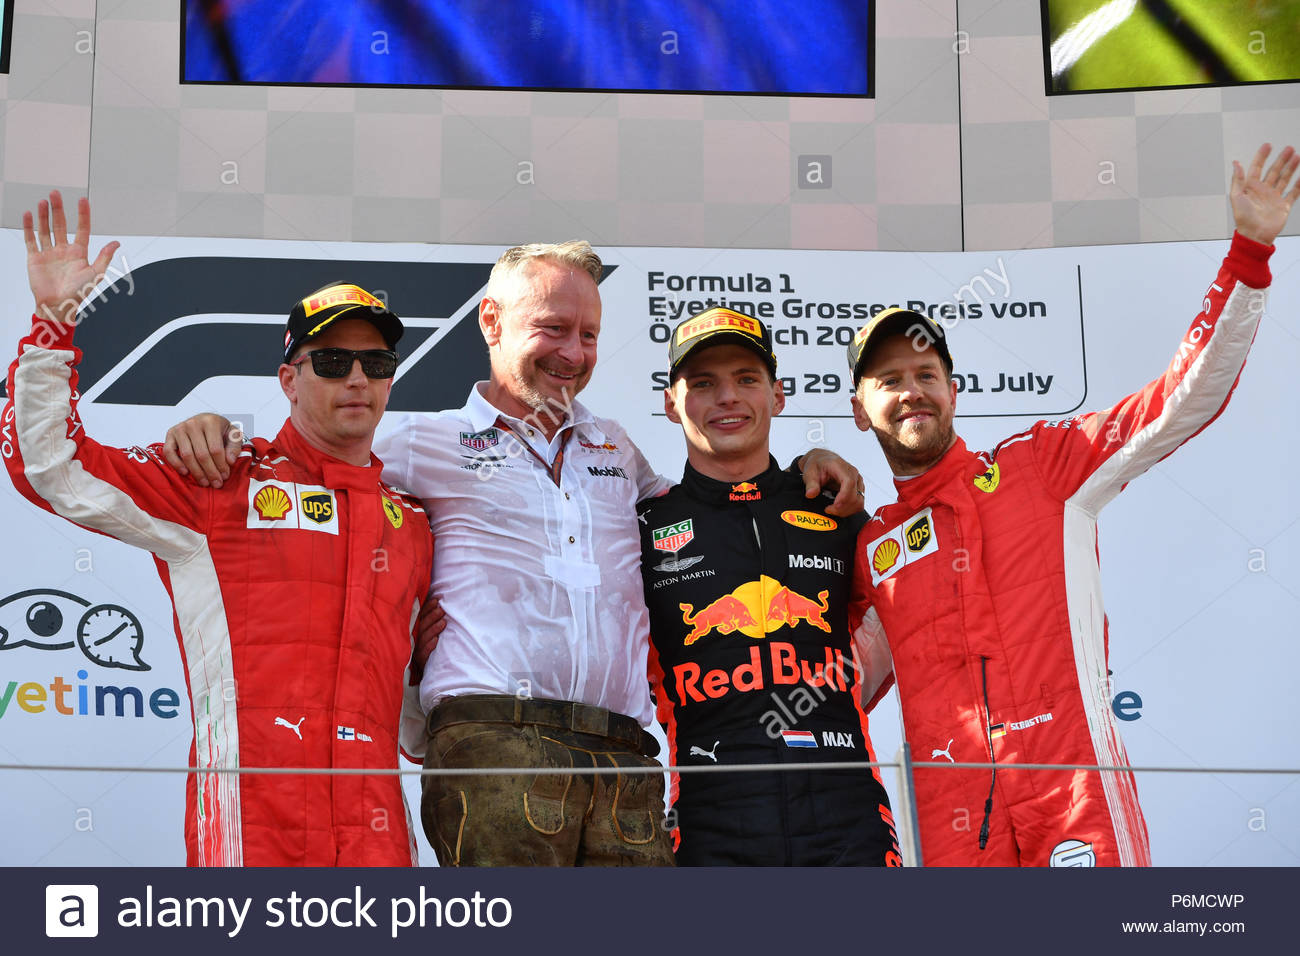 Red Bull Ring, Spielberg, Austria. 1st Jul, 2018. Kimi Raikkonen (FIN) Ferrari, Jonathan Wheatley (GBR) Red Bull Racing Team Manager, mxp and Sebastian Vettel (GER) Ferrari celebrate on the podium during the Austrian GP at Red Bull Ring on July 01, 2018 in Red Bull Ring, Austria. (Photo by Mark Sutton / Sutton Images) Credit: Motorsport Images/Alamy Live News - Stock Image